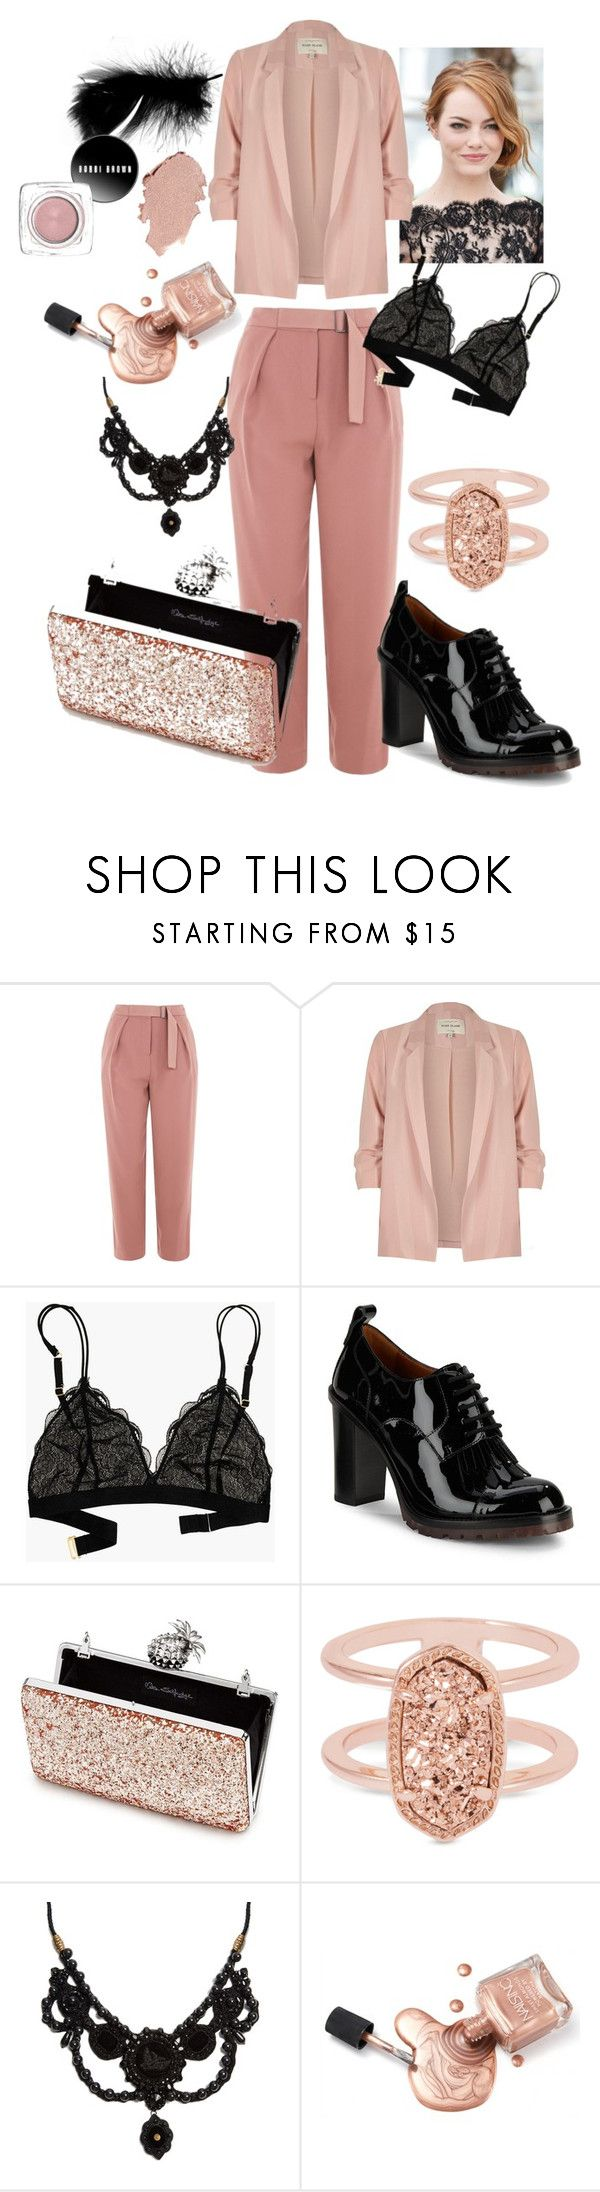 """black, pink suit"" by anaclaraberns ❤ liked on Polyvore featuring Topshop, River Island, Madewell, Valentino, Miss Selfridge, Kendra Scott and Gucci"